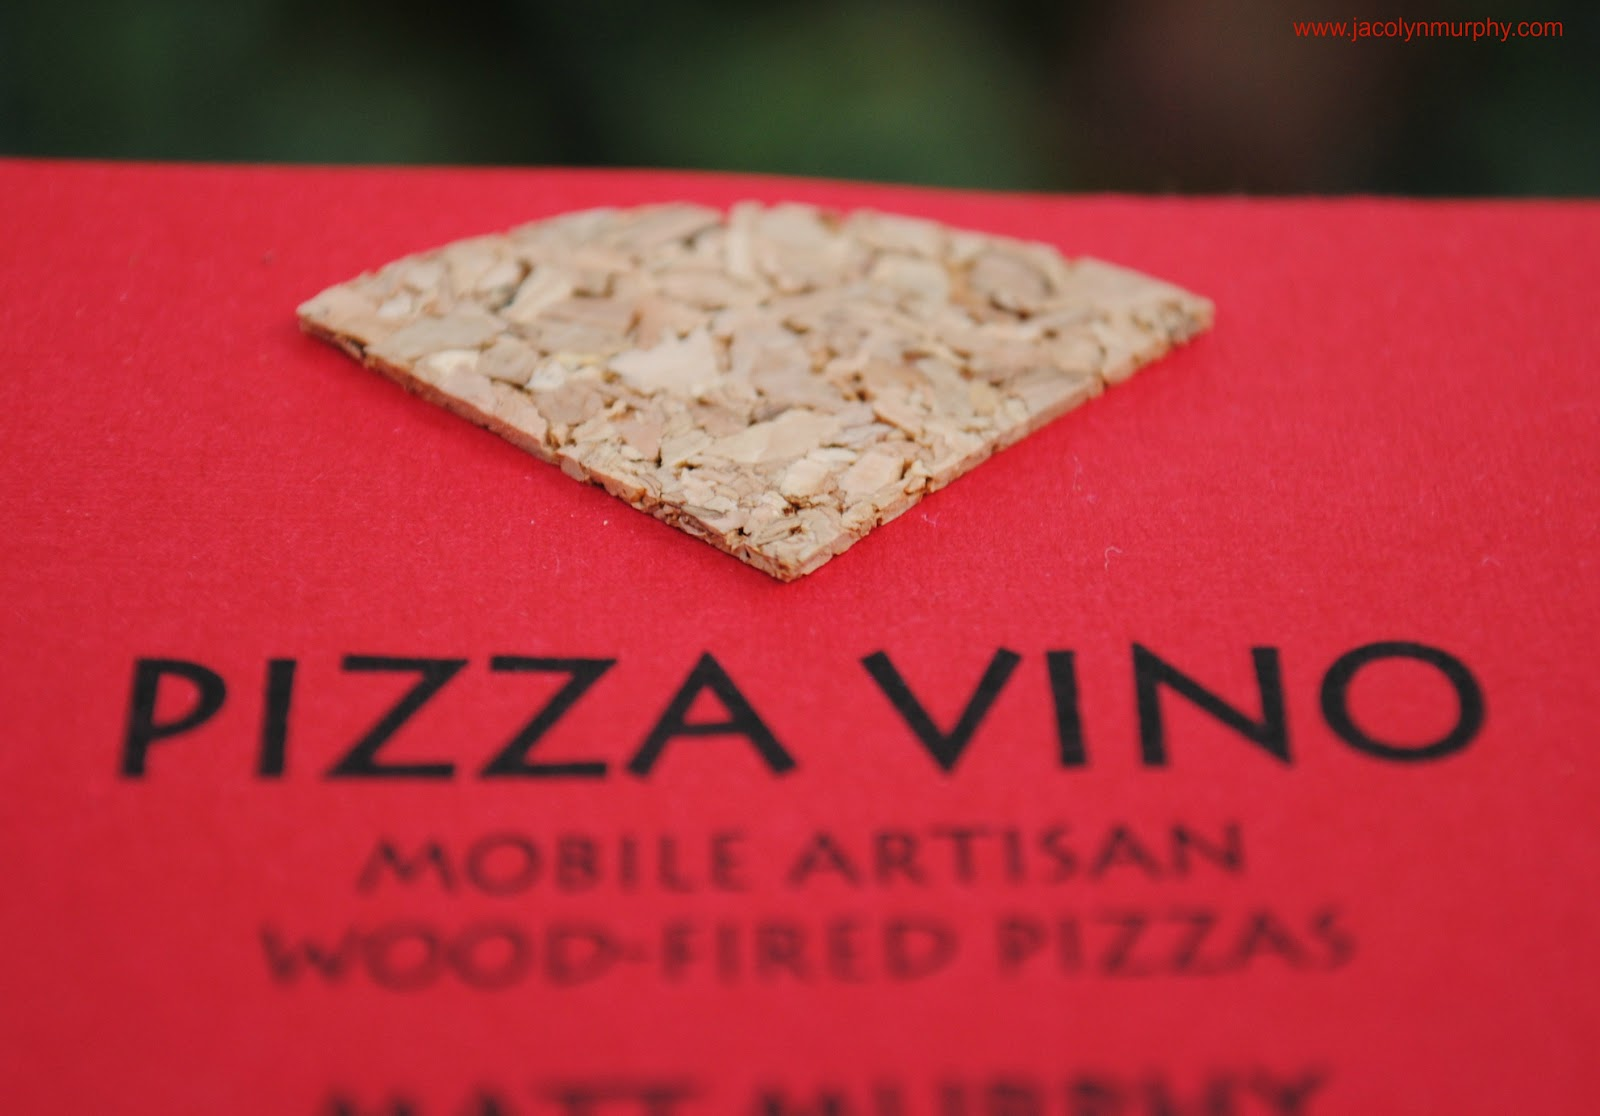 Jac o\' lyn Murphy: Hot out of the Oven...Pizza Vino Business Cards